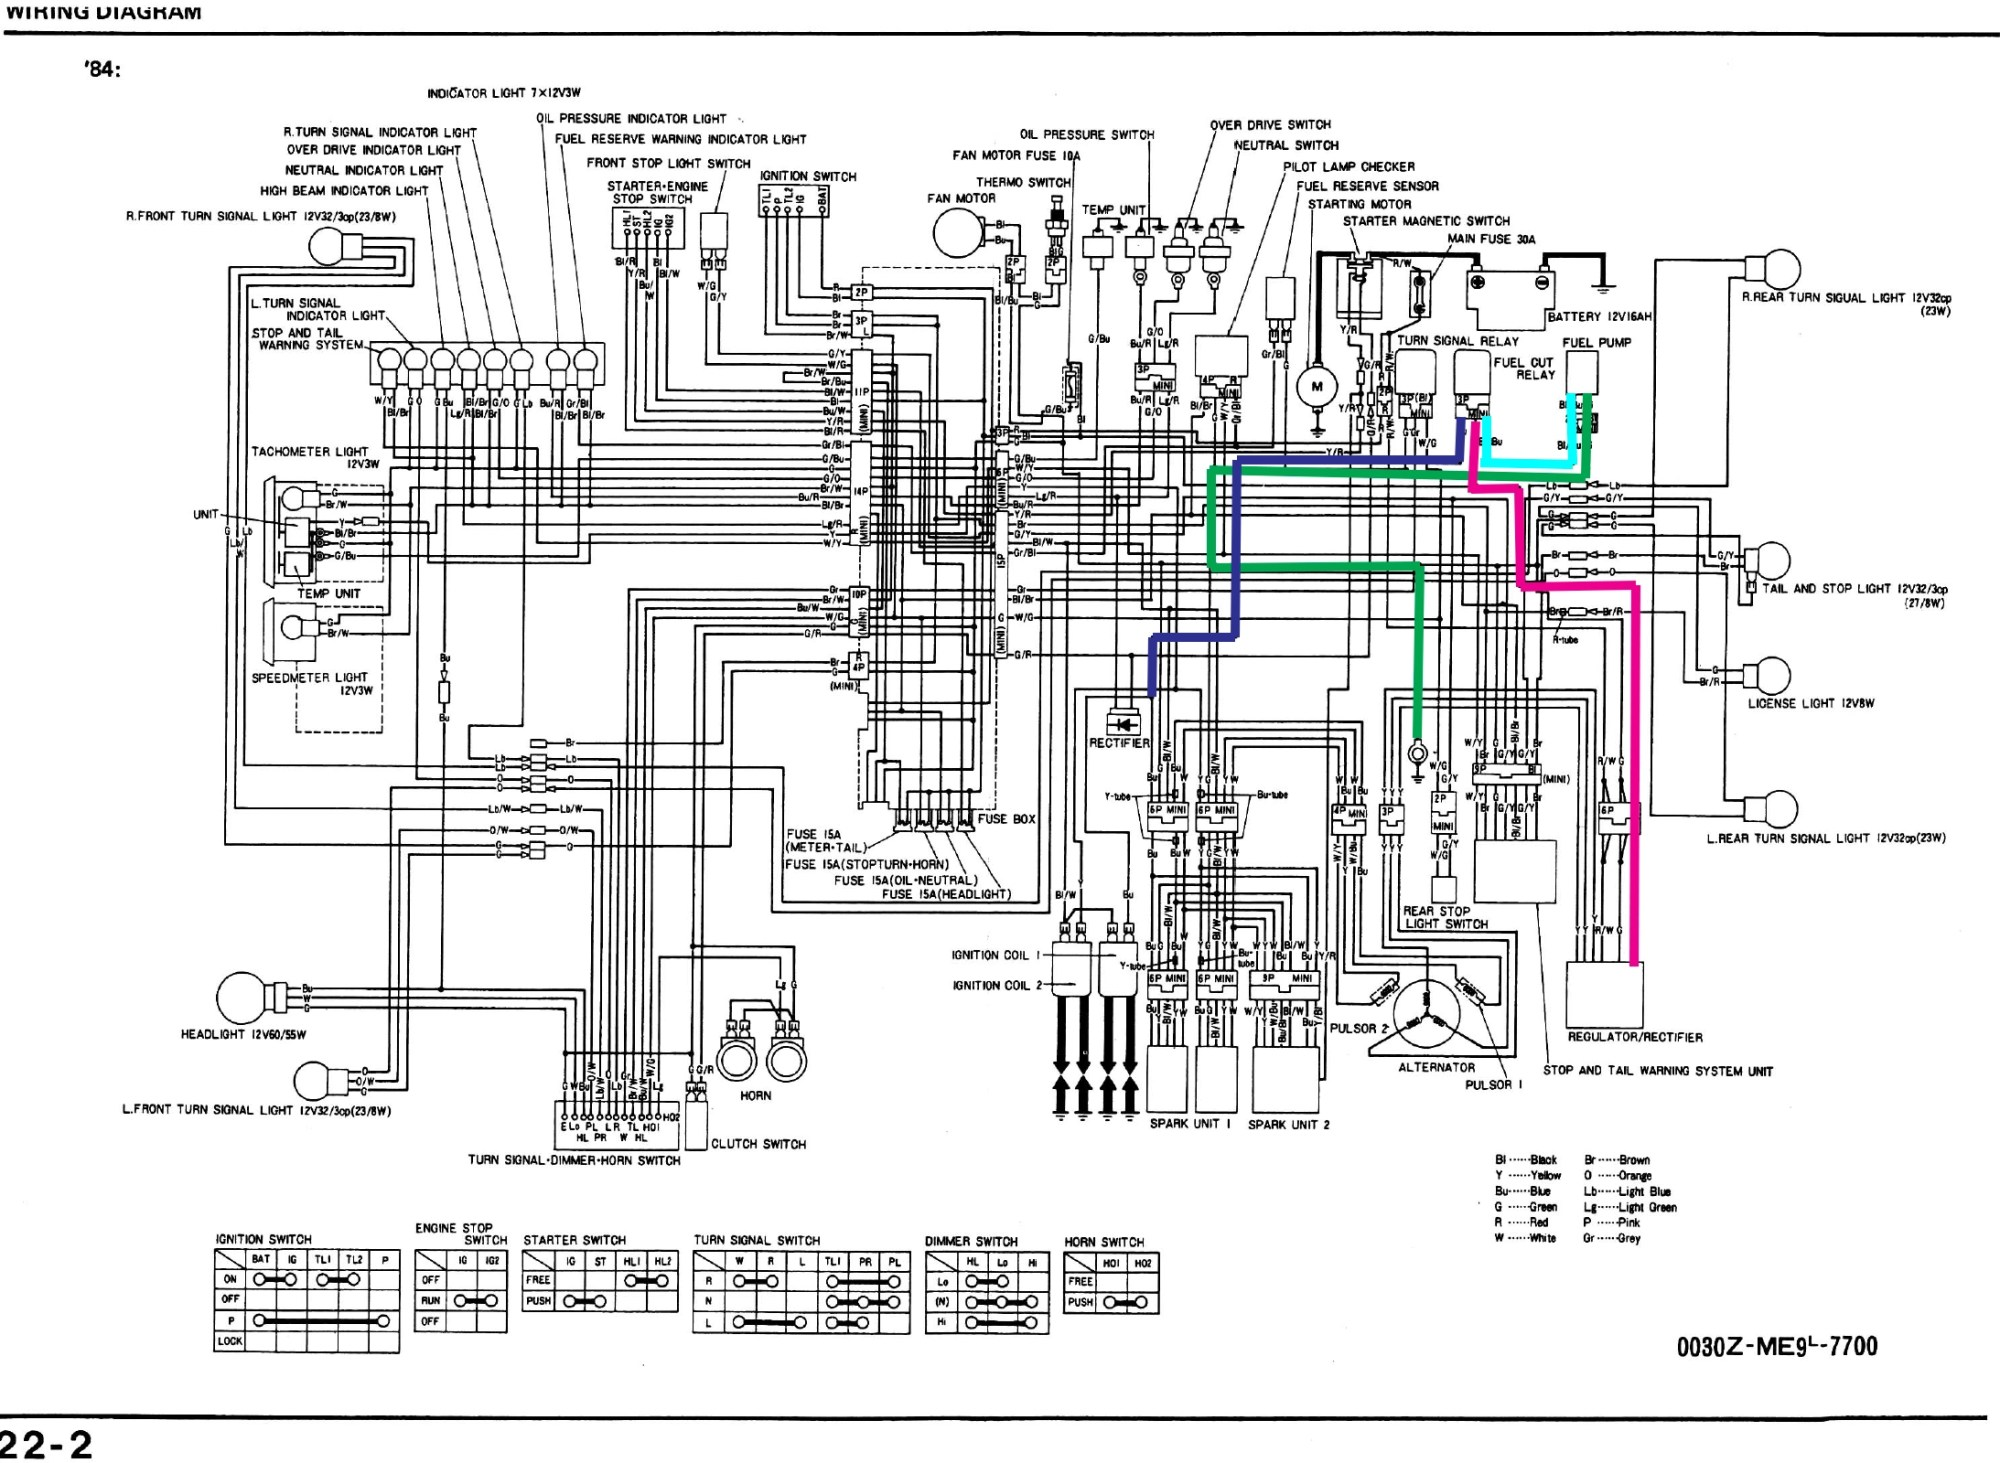 hight resolution of wiring diagram for 1984 honda shadow wiring diagram autowiring diagram for 1984 honda shadow wiring diagram